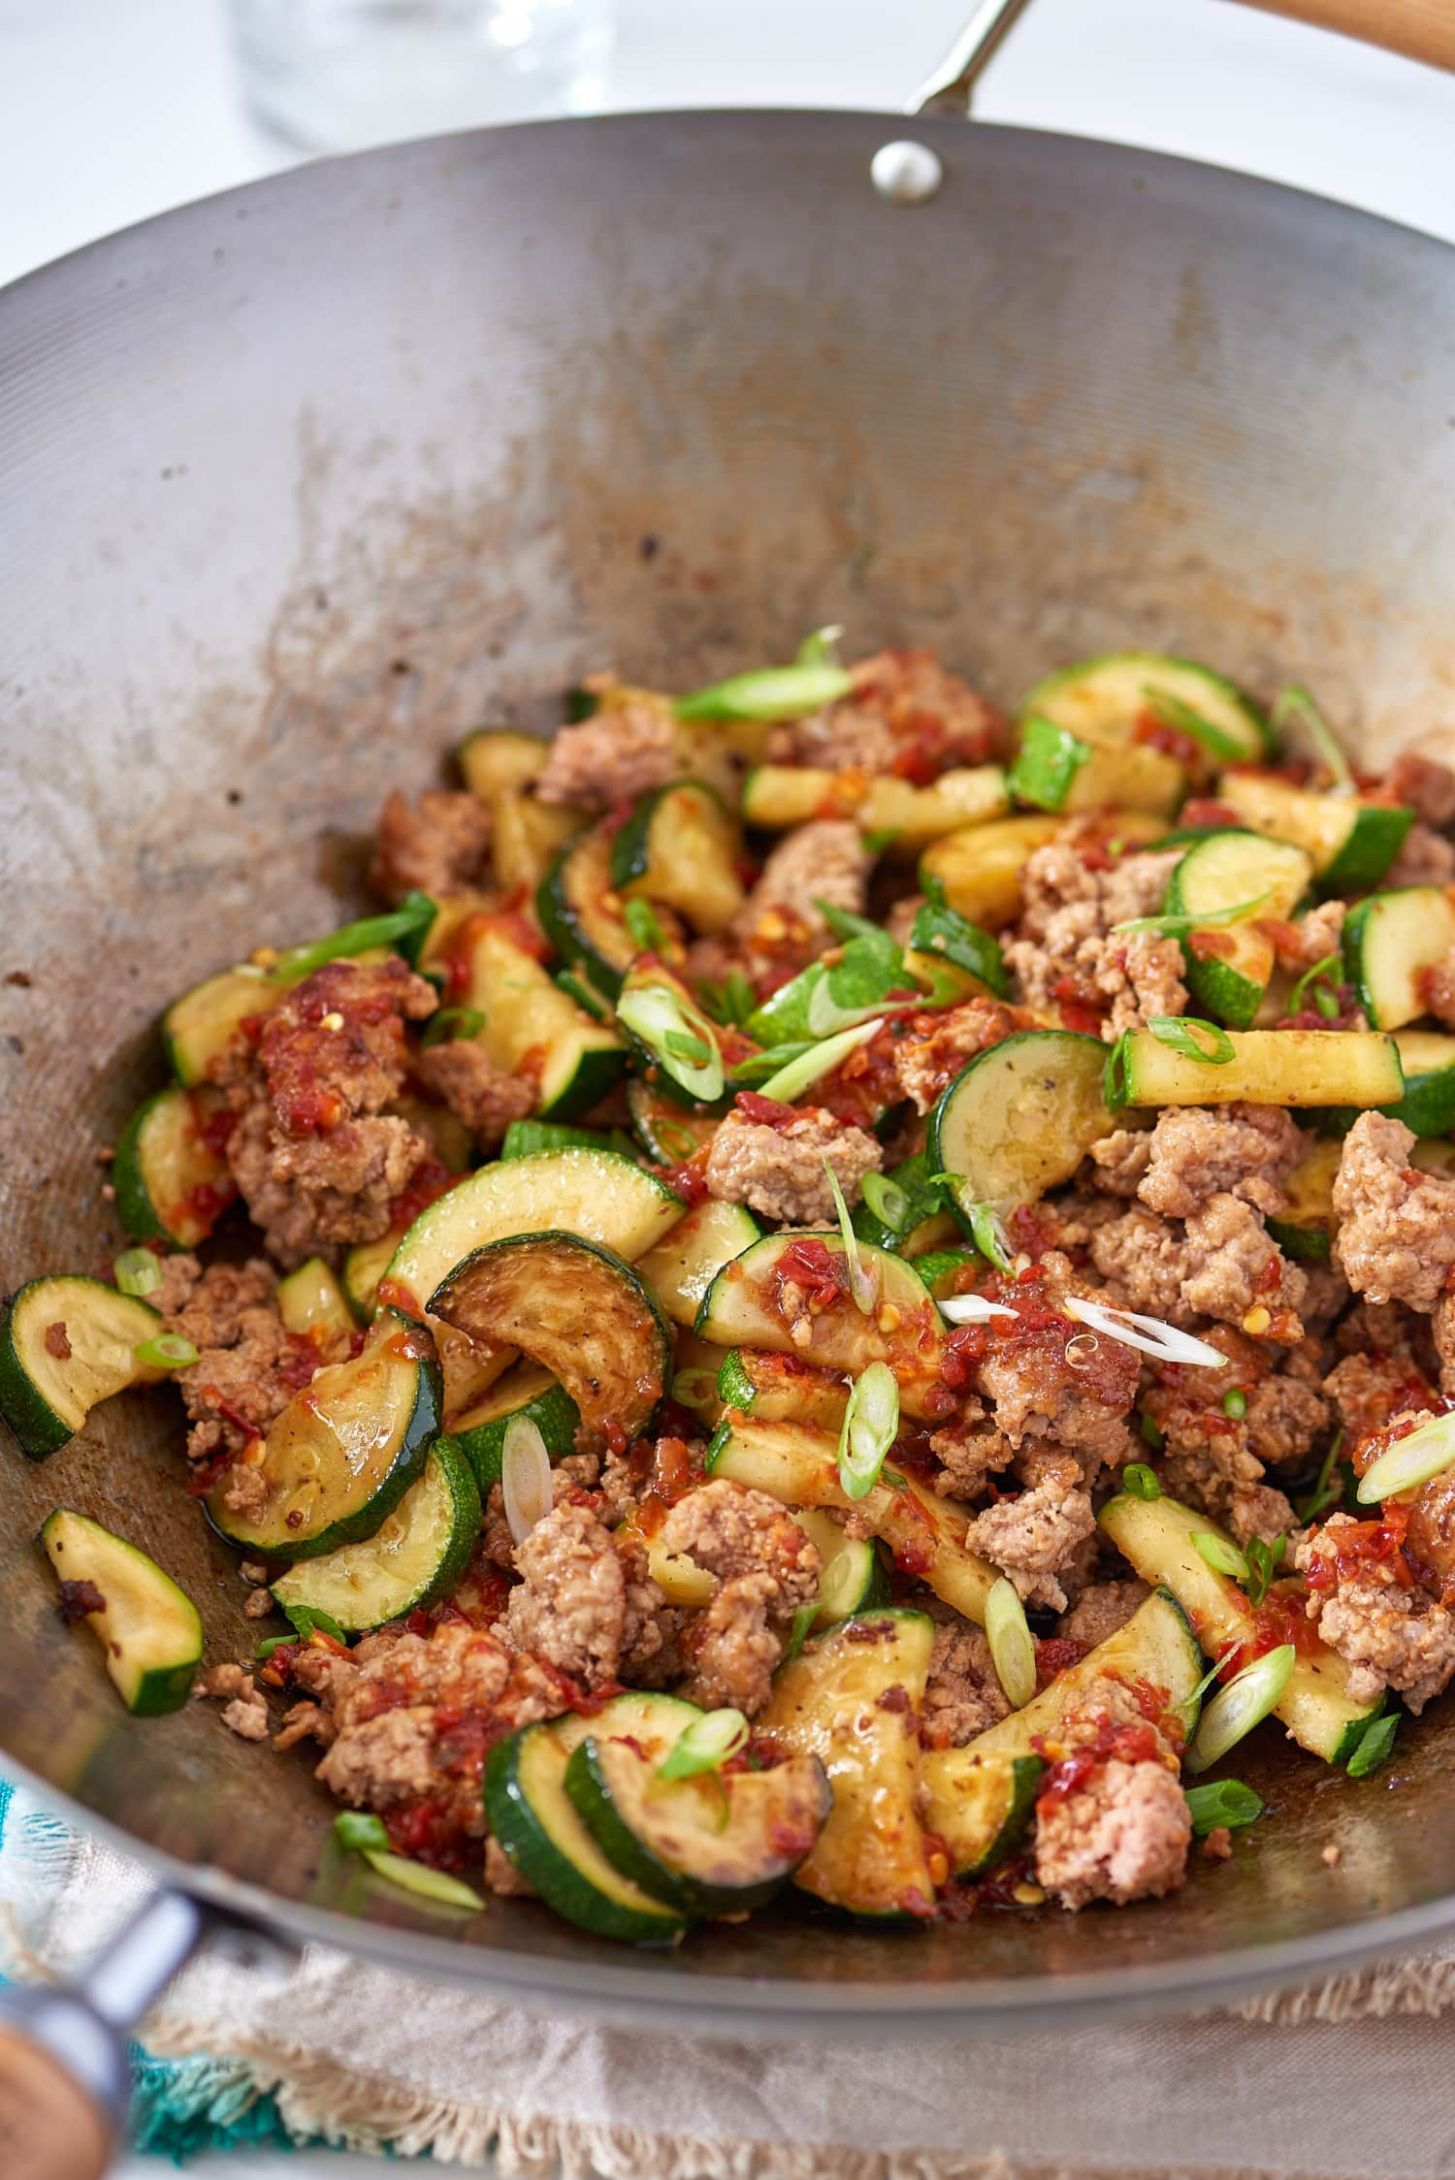 Spicy Ground Pork & Zucchini Stir-Fry